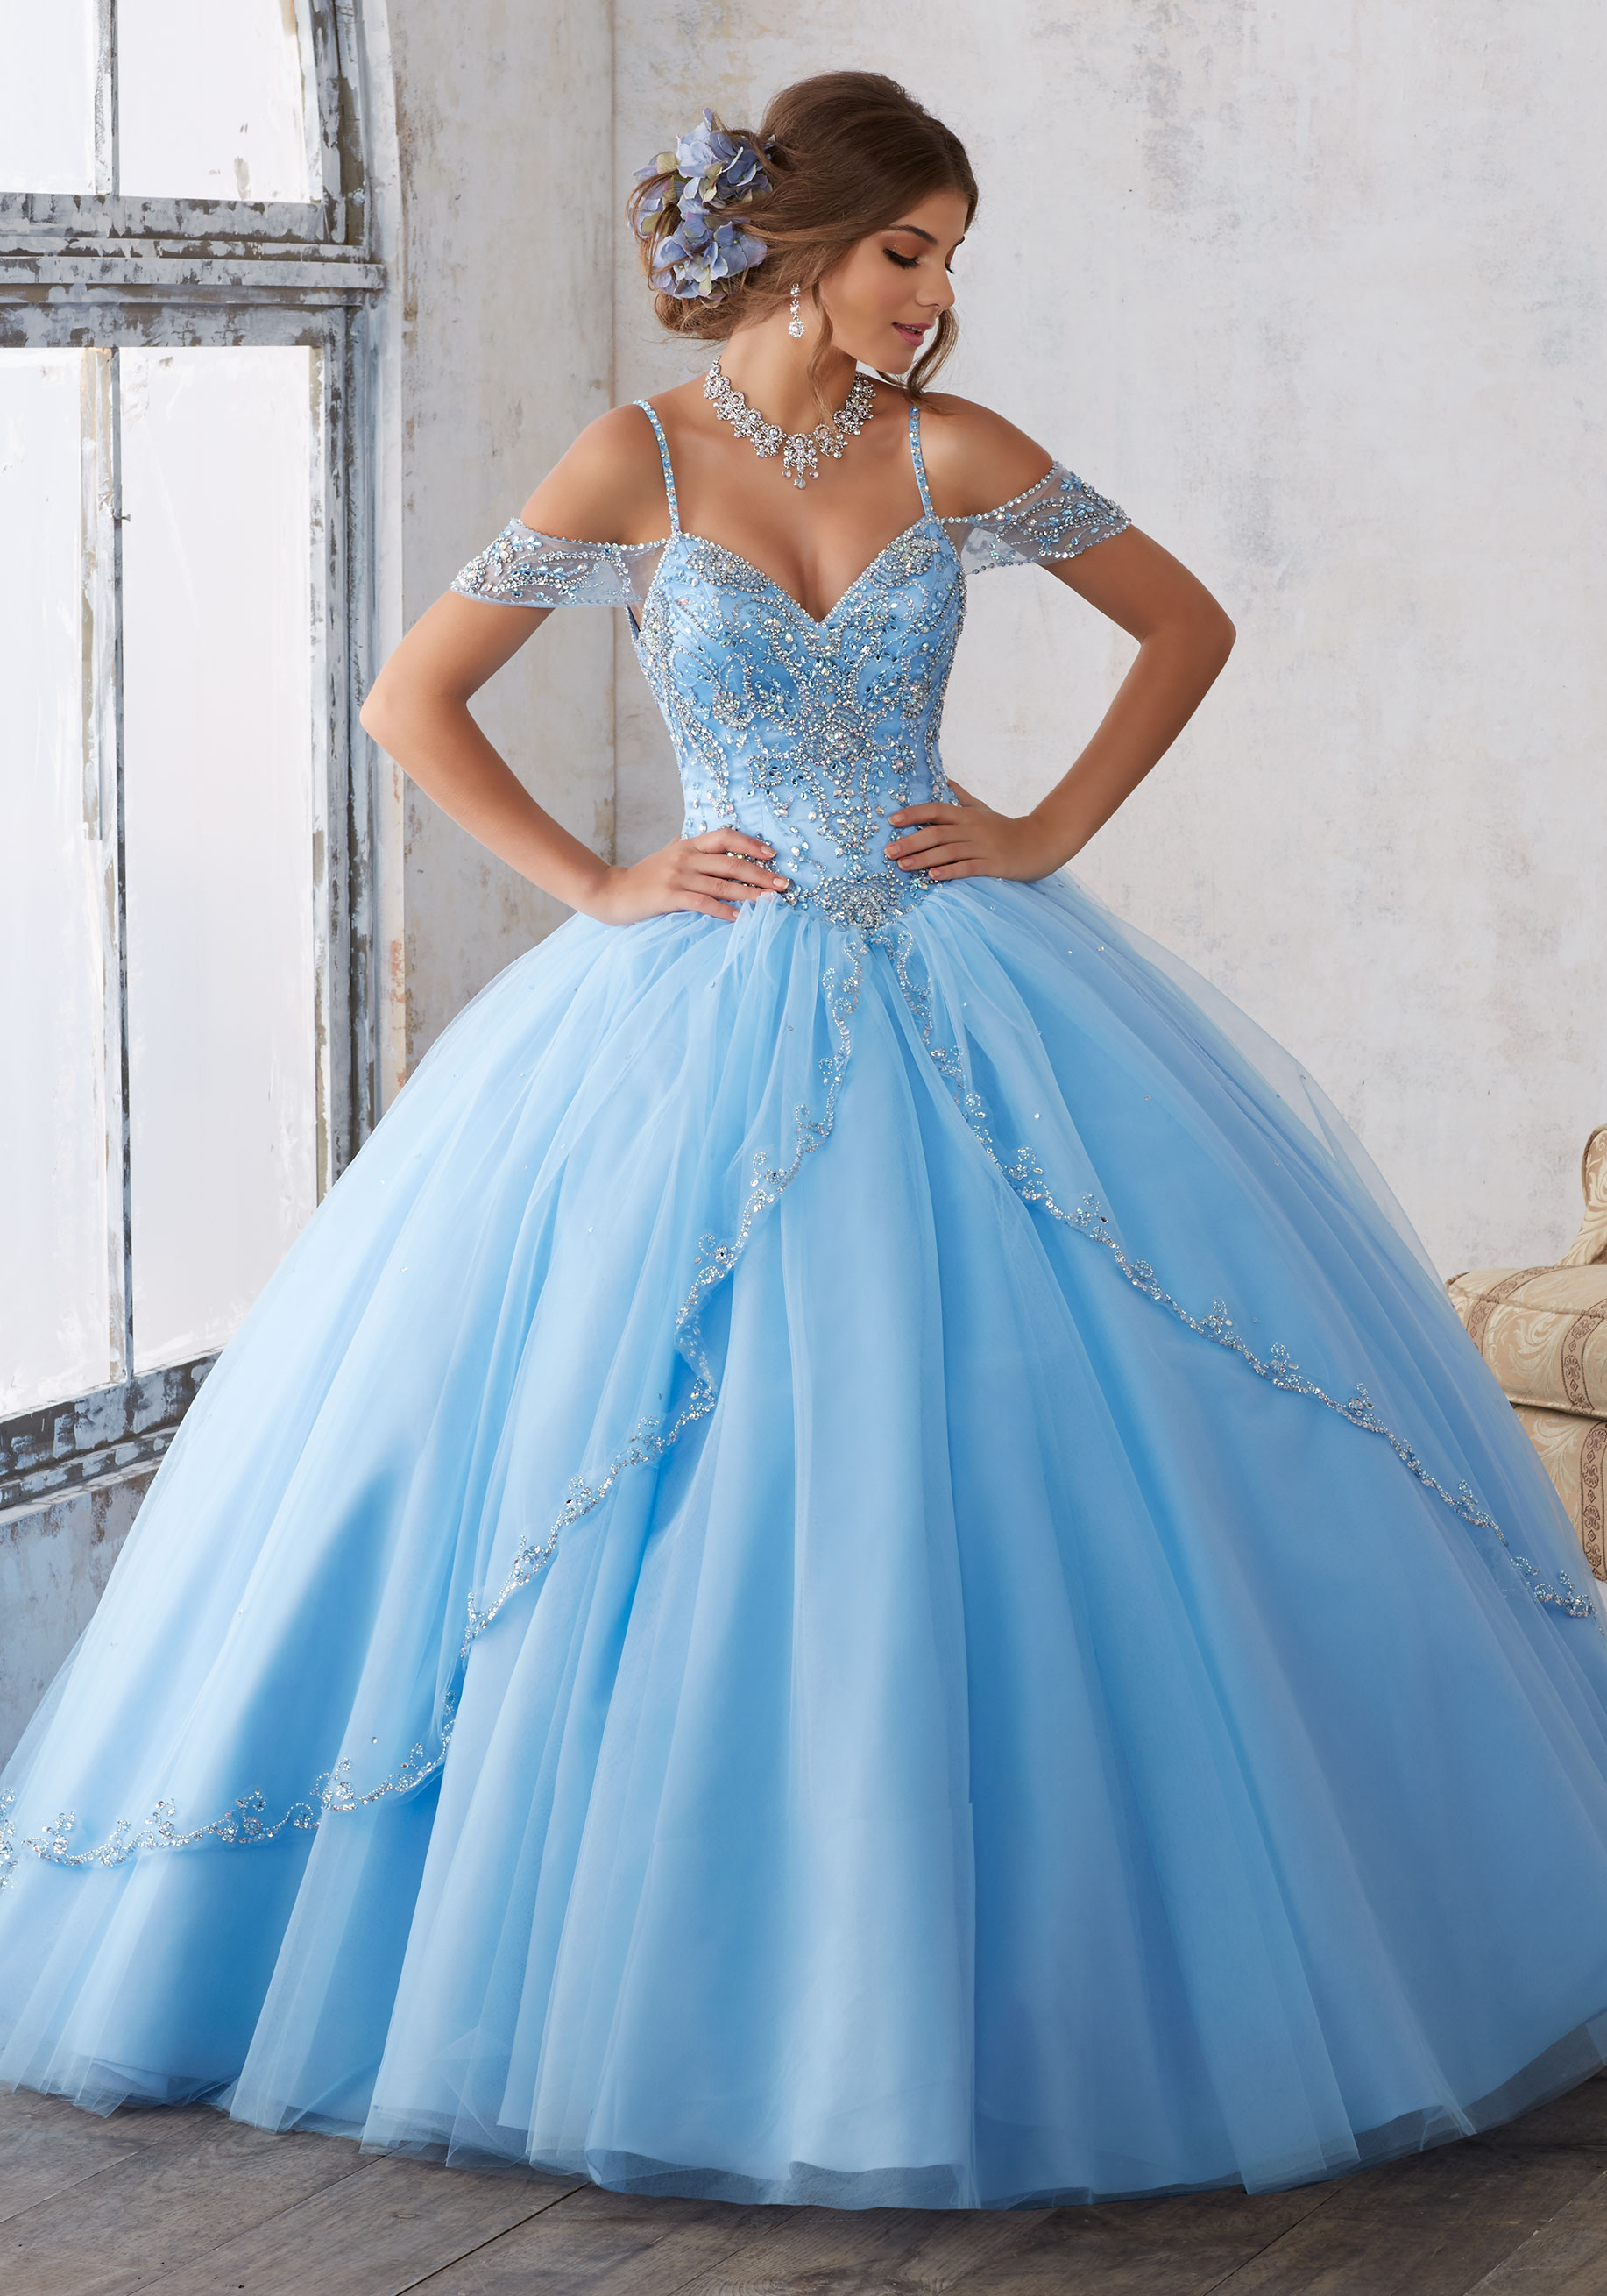 89135 Quinceanera Dresses, Vizcaya Collection - Dresses by Russo Boston